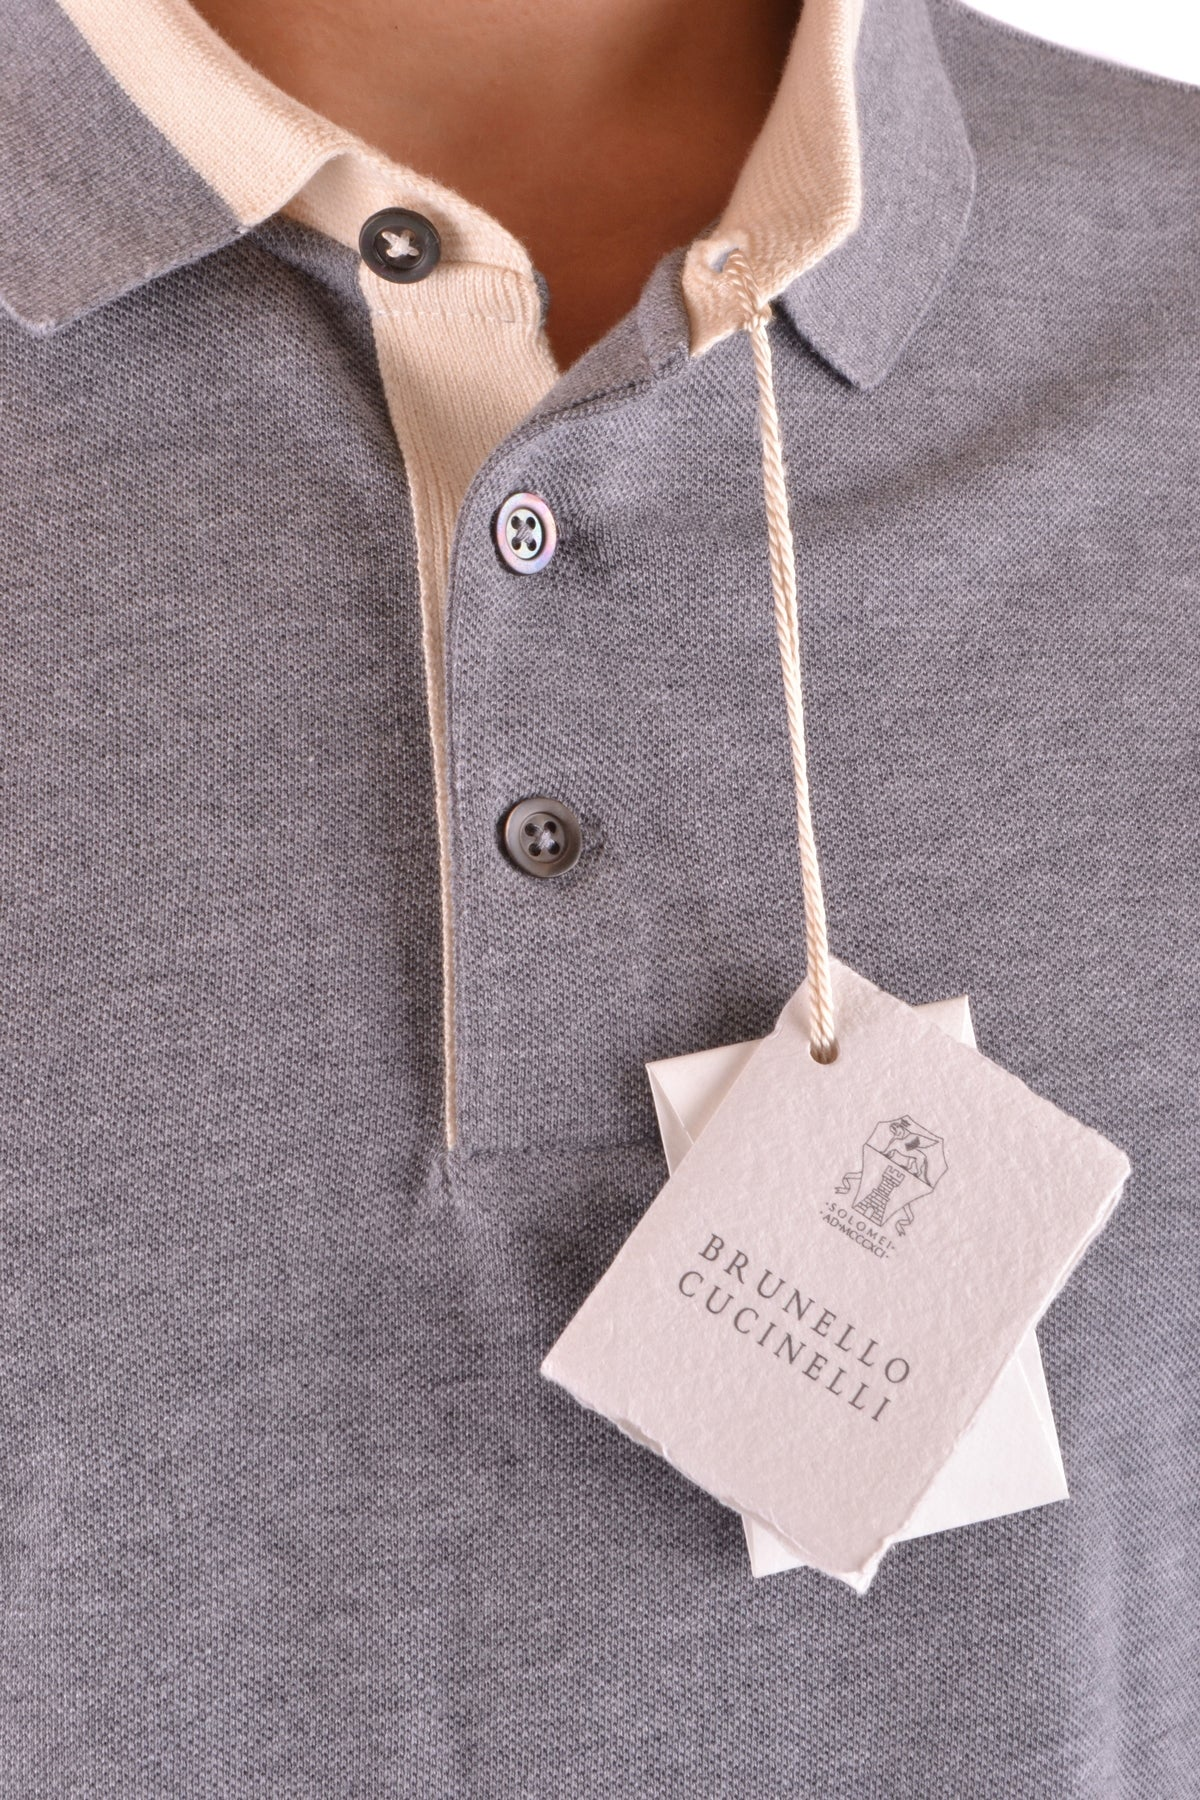 Polo Brunello Cucinelli-Sweater - MAN-Product Details Season: Spring / SummerTerms: New With LabelMain Color: GrayGender: ManMade In: ItalyManufacturer Part Number: M0T630758 Cv428Size: IntYear: 2018Clothing Type: Sweater Composition: Cotton 100%-Keyomi-Sook